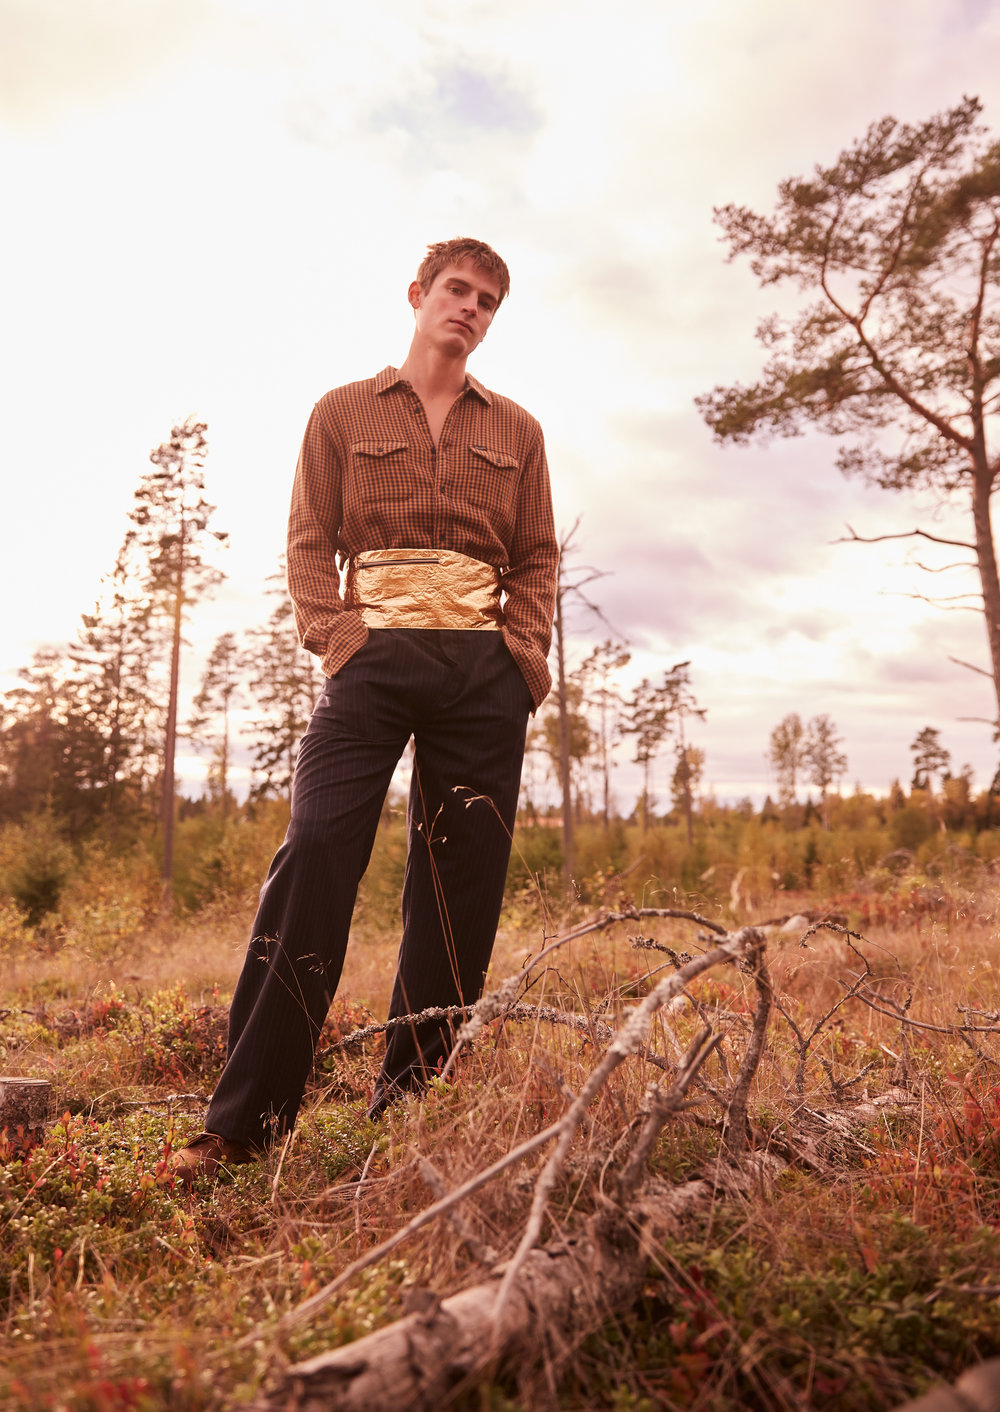 Shirt by Wrangler, belt and pants by Johannes Adele, boots by R.M. Williams